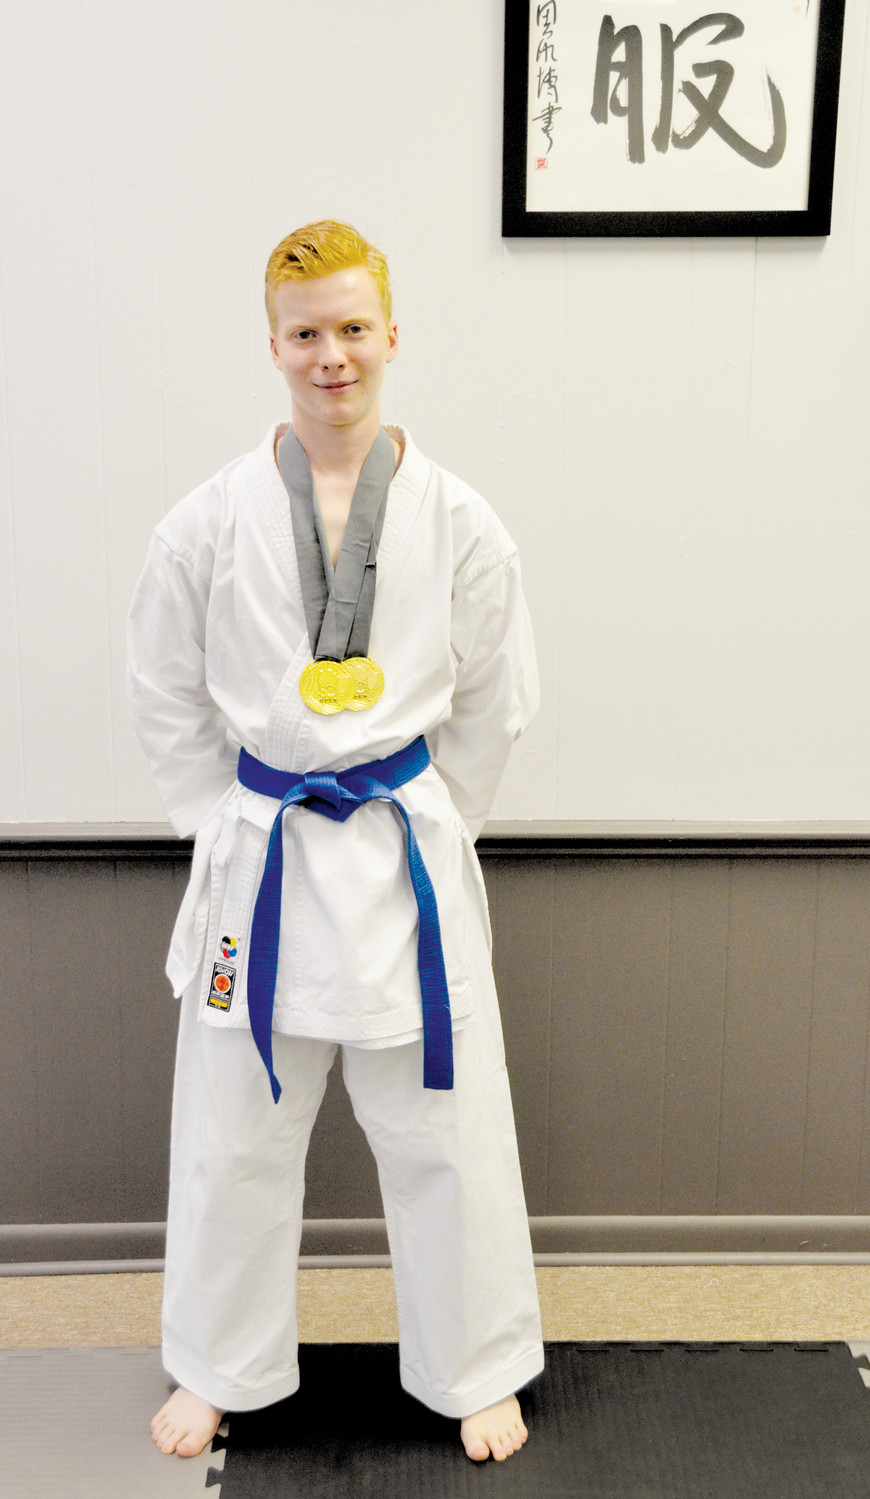 Christian Smith, 19, attends Wake Technical Community College. He recently earned two gold medals — one in Kata, the other in Kumate — at the regional tournament in Greenville, S.C.